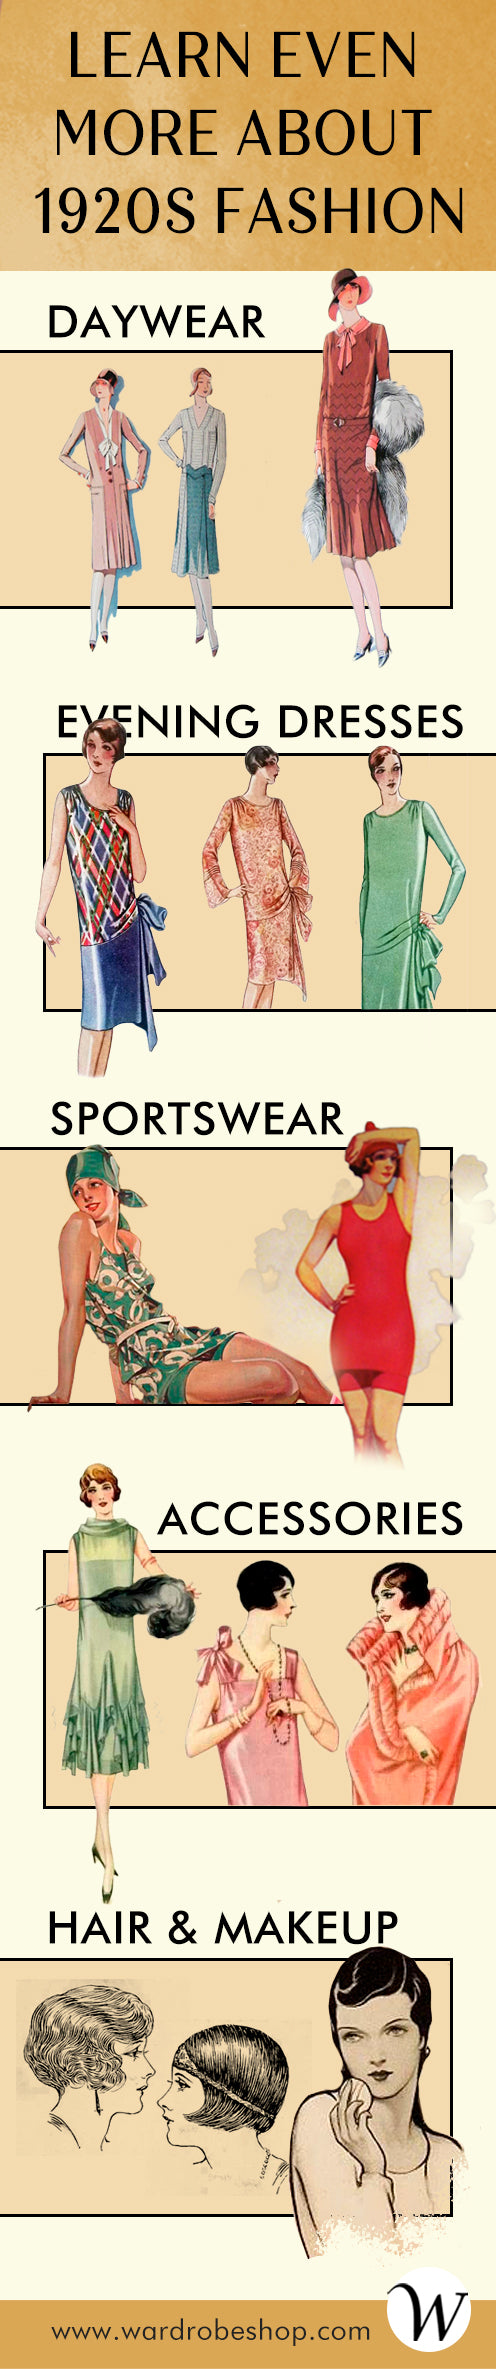 1920s fashion infographic